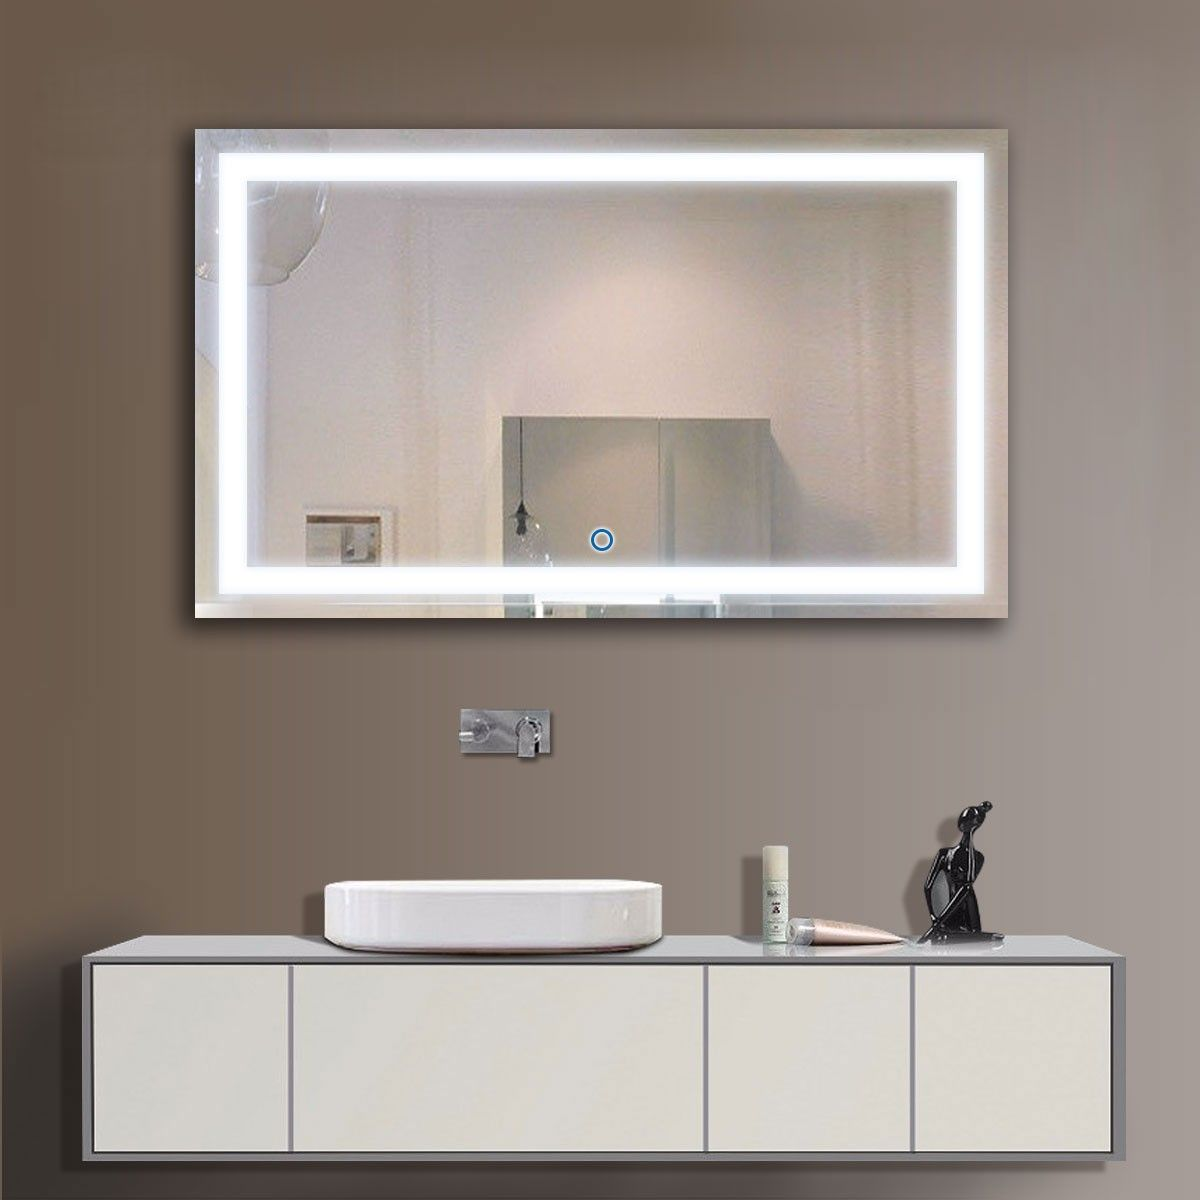 40 x 24 In Horizontal LED Bathroom Silvered Mirror Touch Button